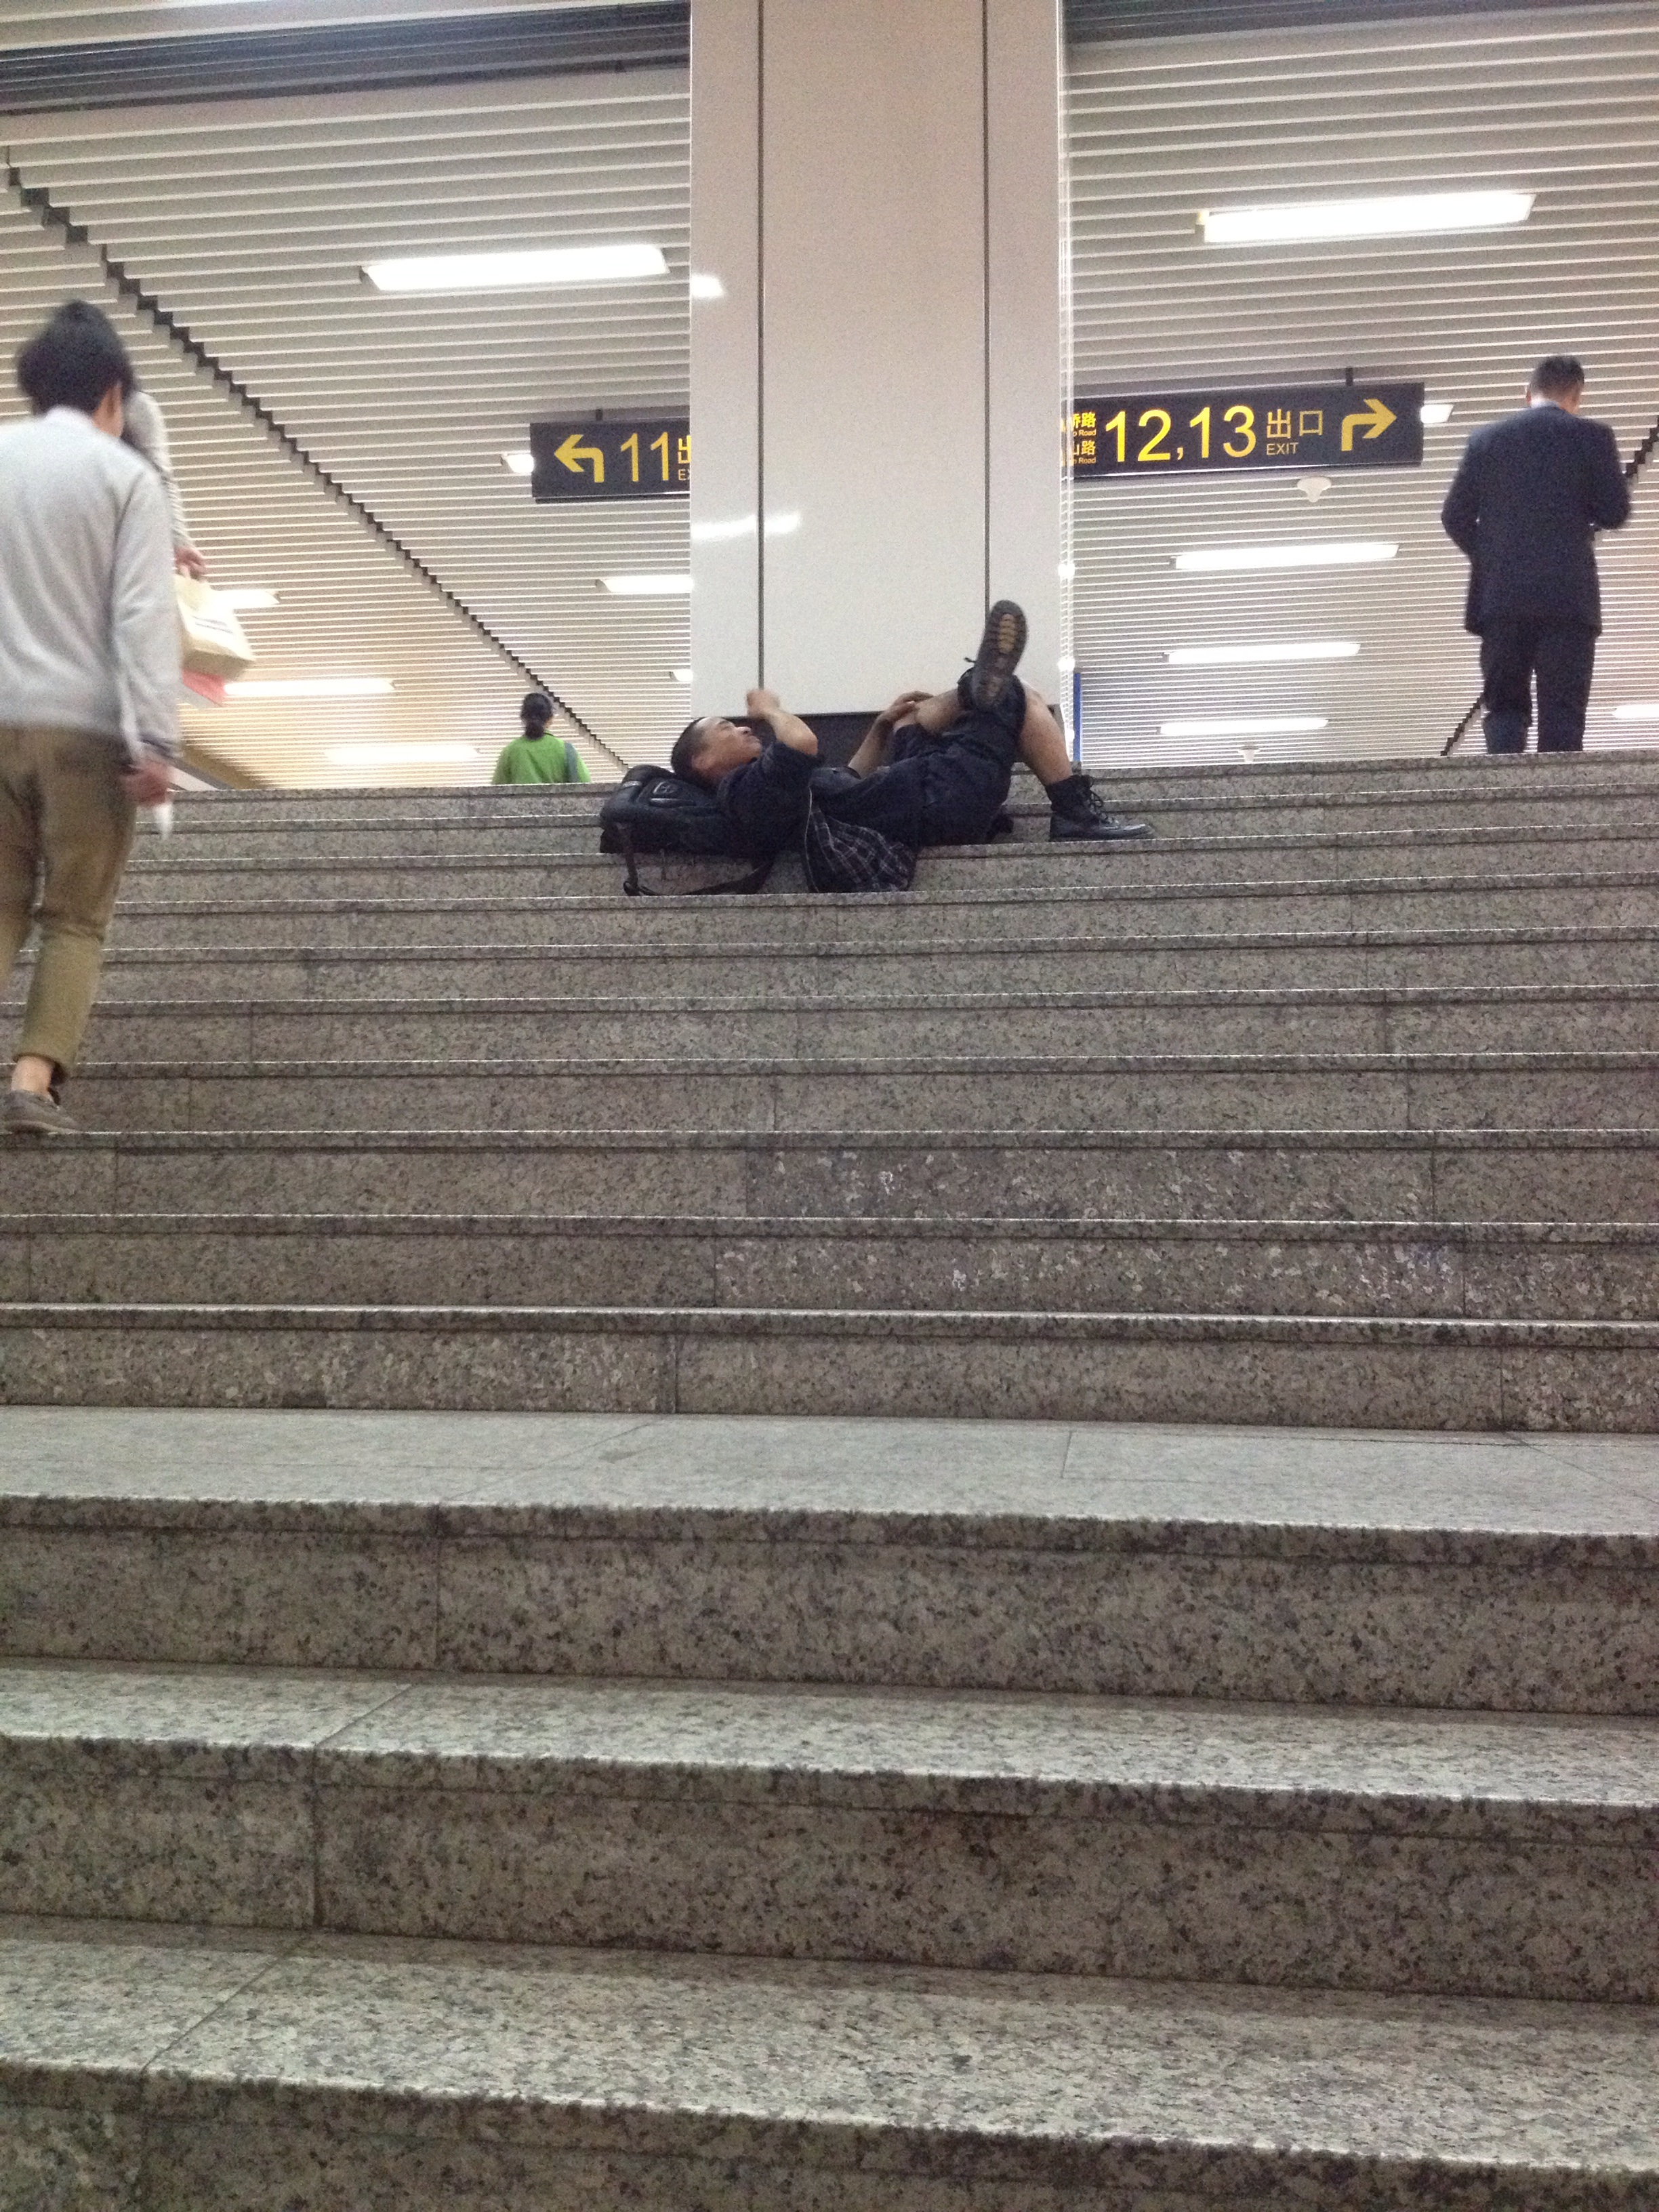 I guess if you are tired enough Xujiahui metro station is a great place to nap